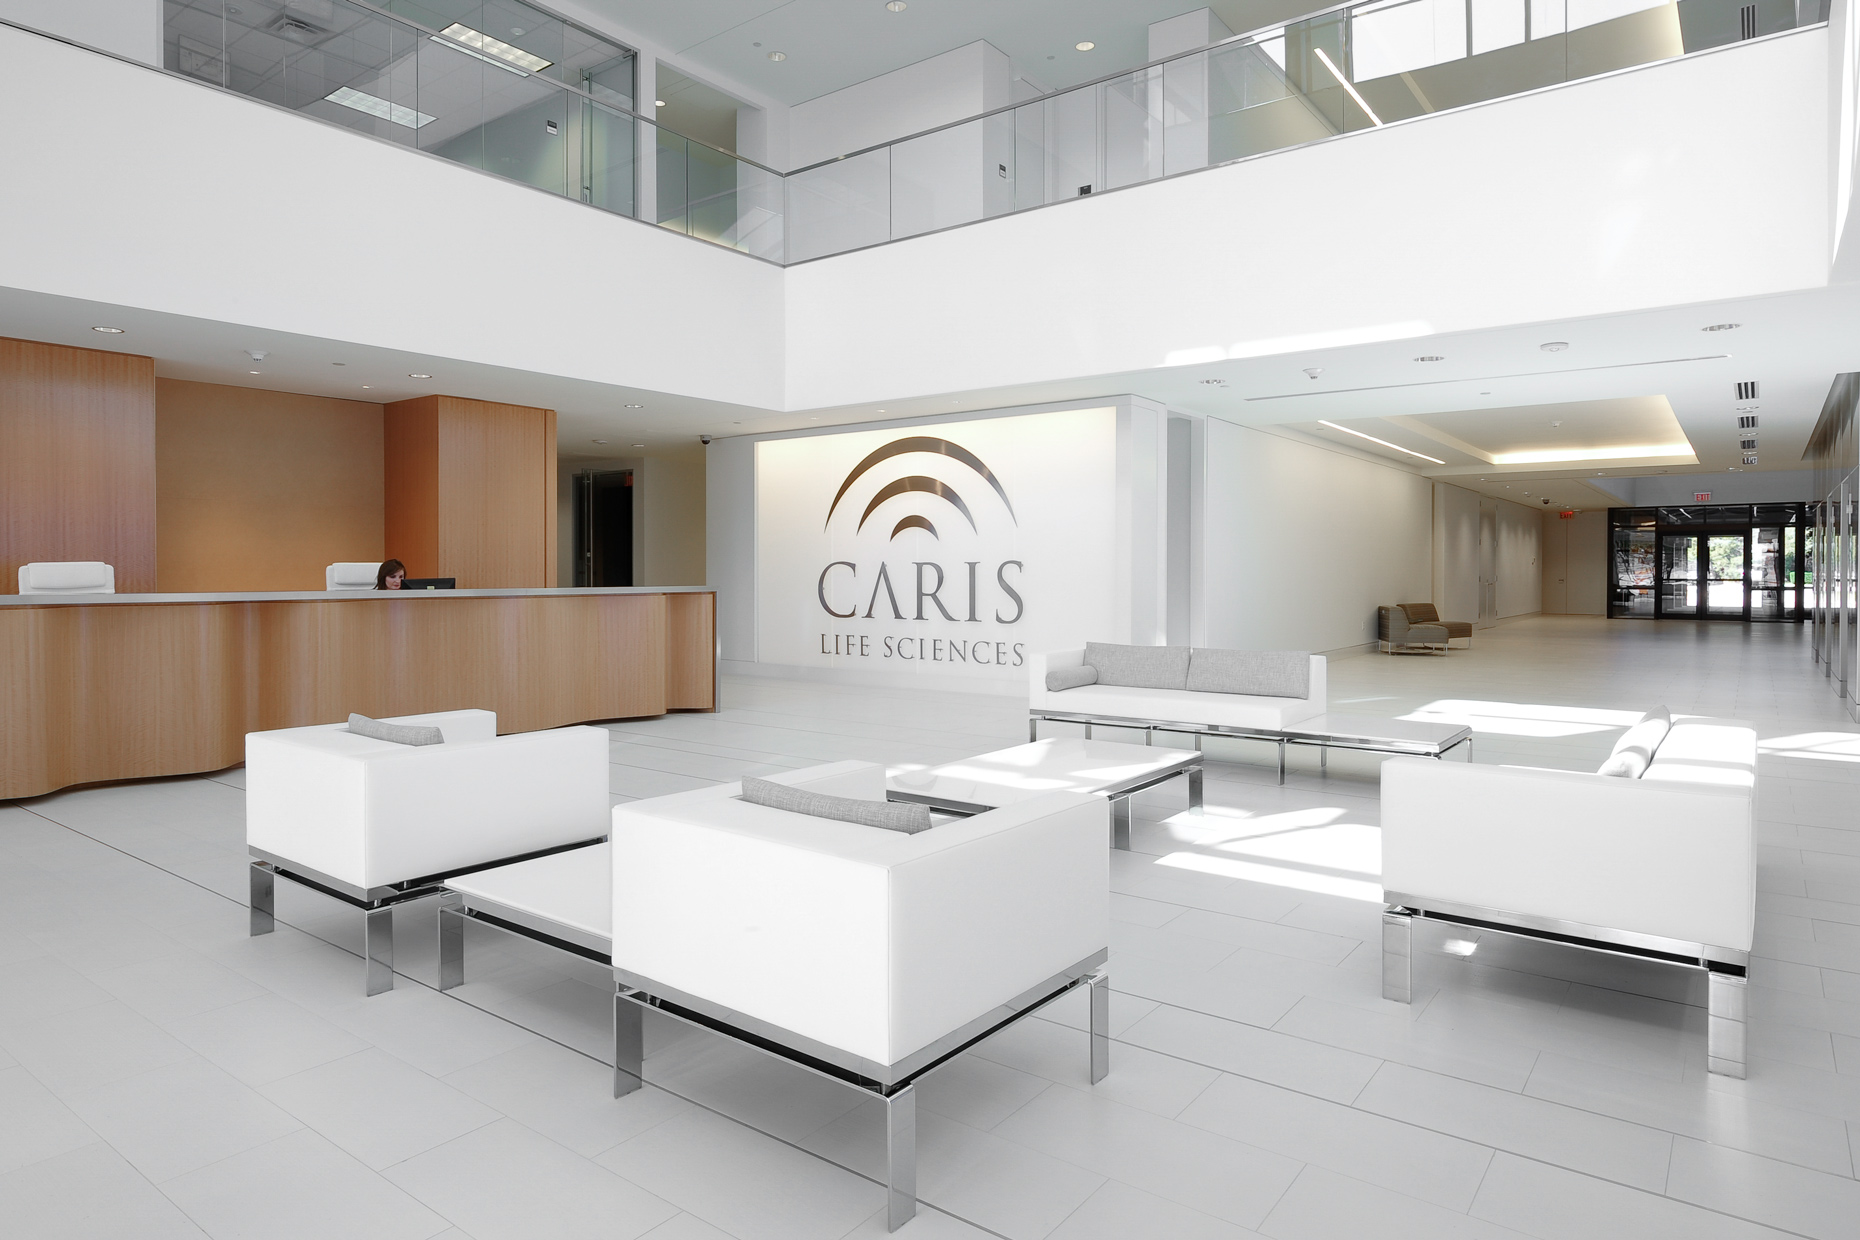 Caris Life Sciences by Dallas architectural photographer Kevin Brown